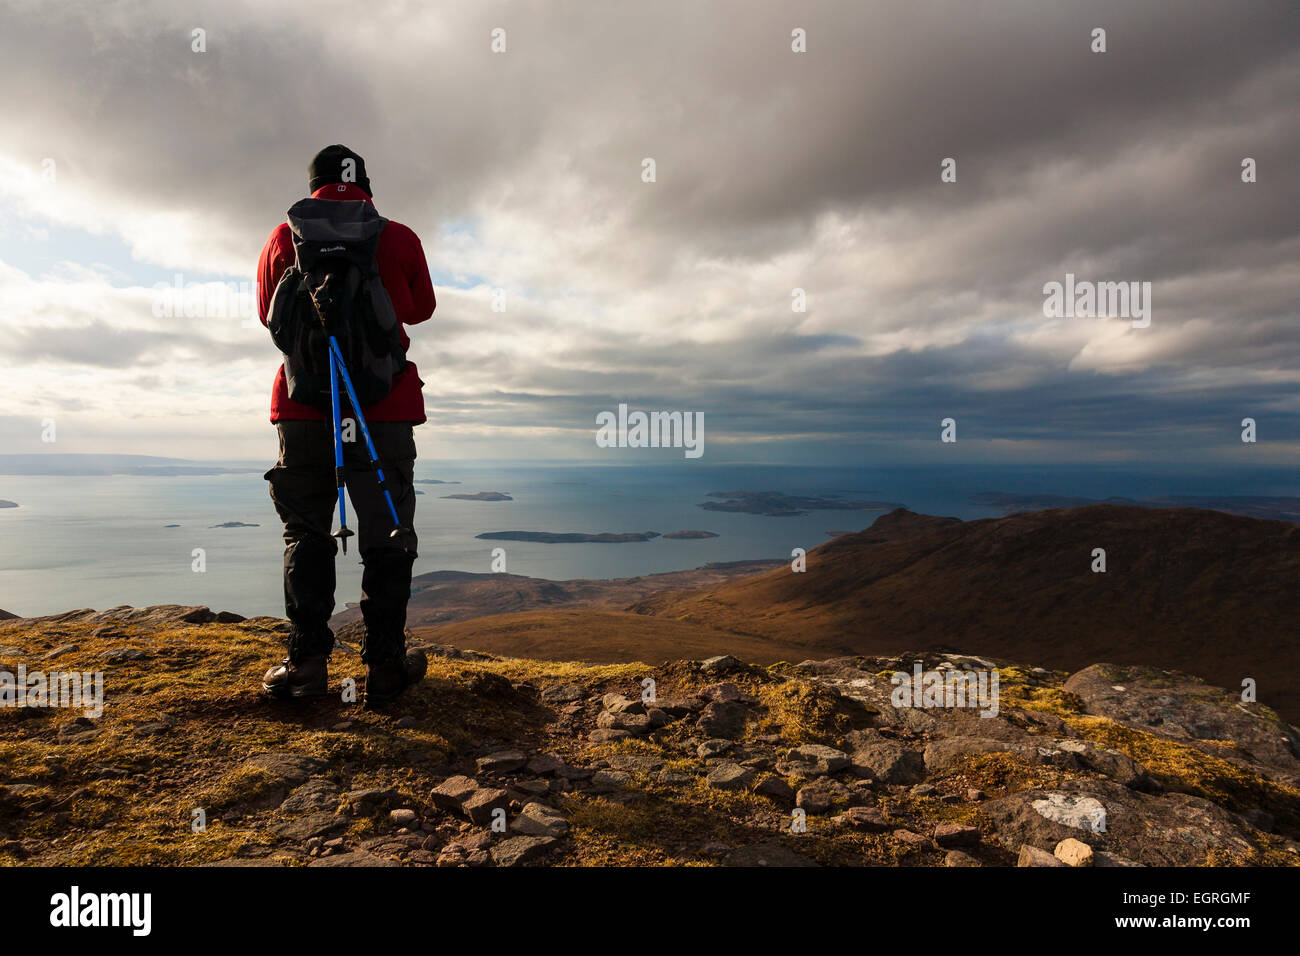 Hillwalker overlooking the sea from a hill in Coigach in the far north of Scotland - Stock Image